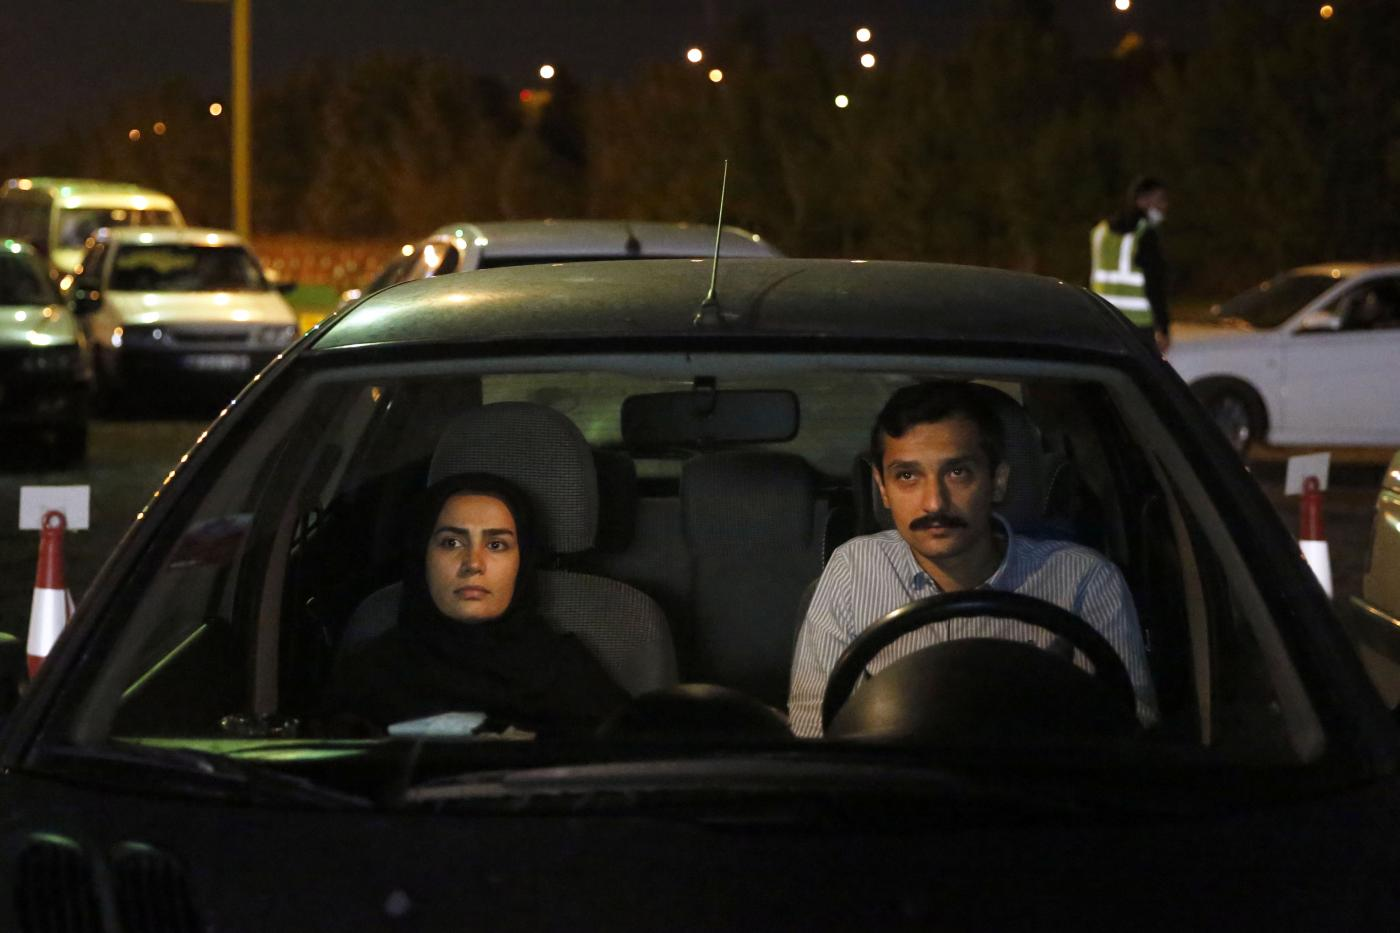 Iranians sitting in their vehicles attend a drive-in religious ceremony